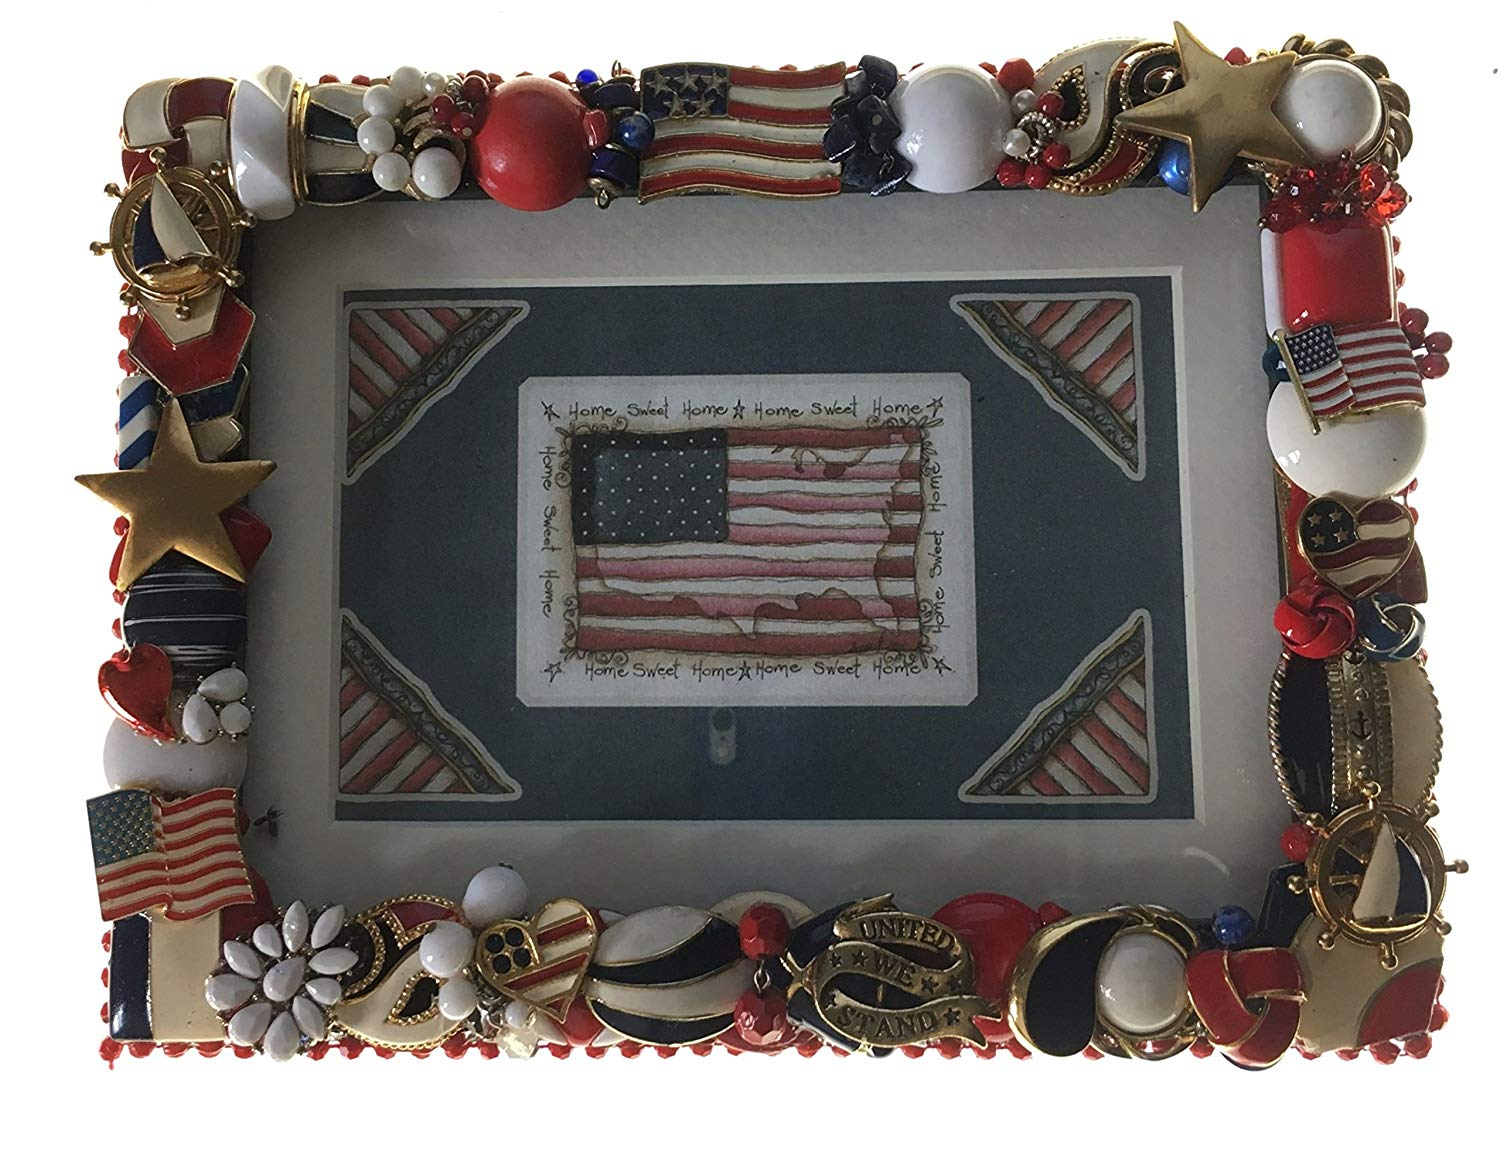 "Patriotic USA, Red, White & Blue Sparkle Picture Frame Handcrafted From Recycled Vintage Jewelry, Holds 5"" x 7"" or 4"" x 6"" Picture, Hang on Wall or Stand Alone, #888"